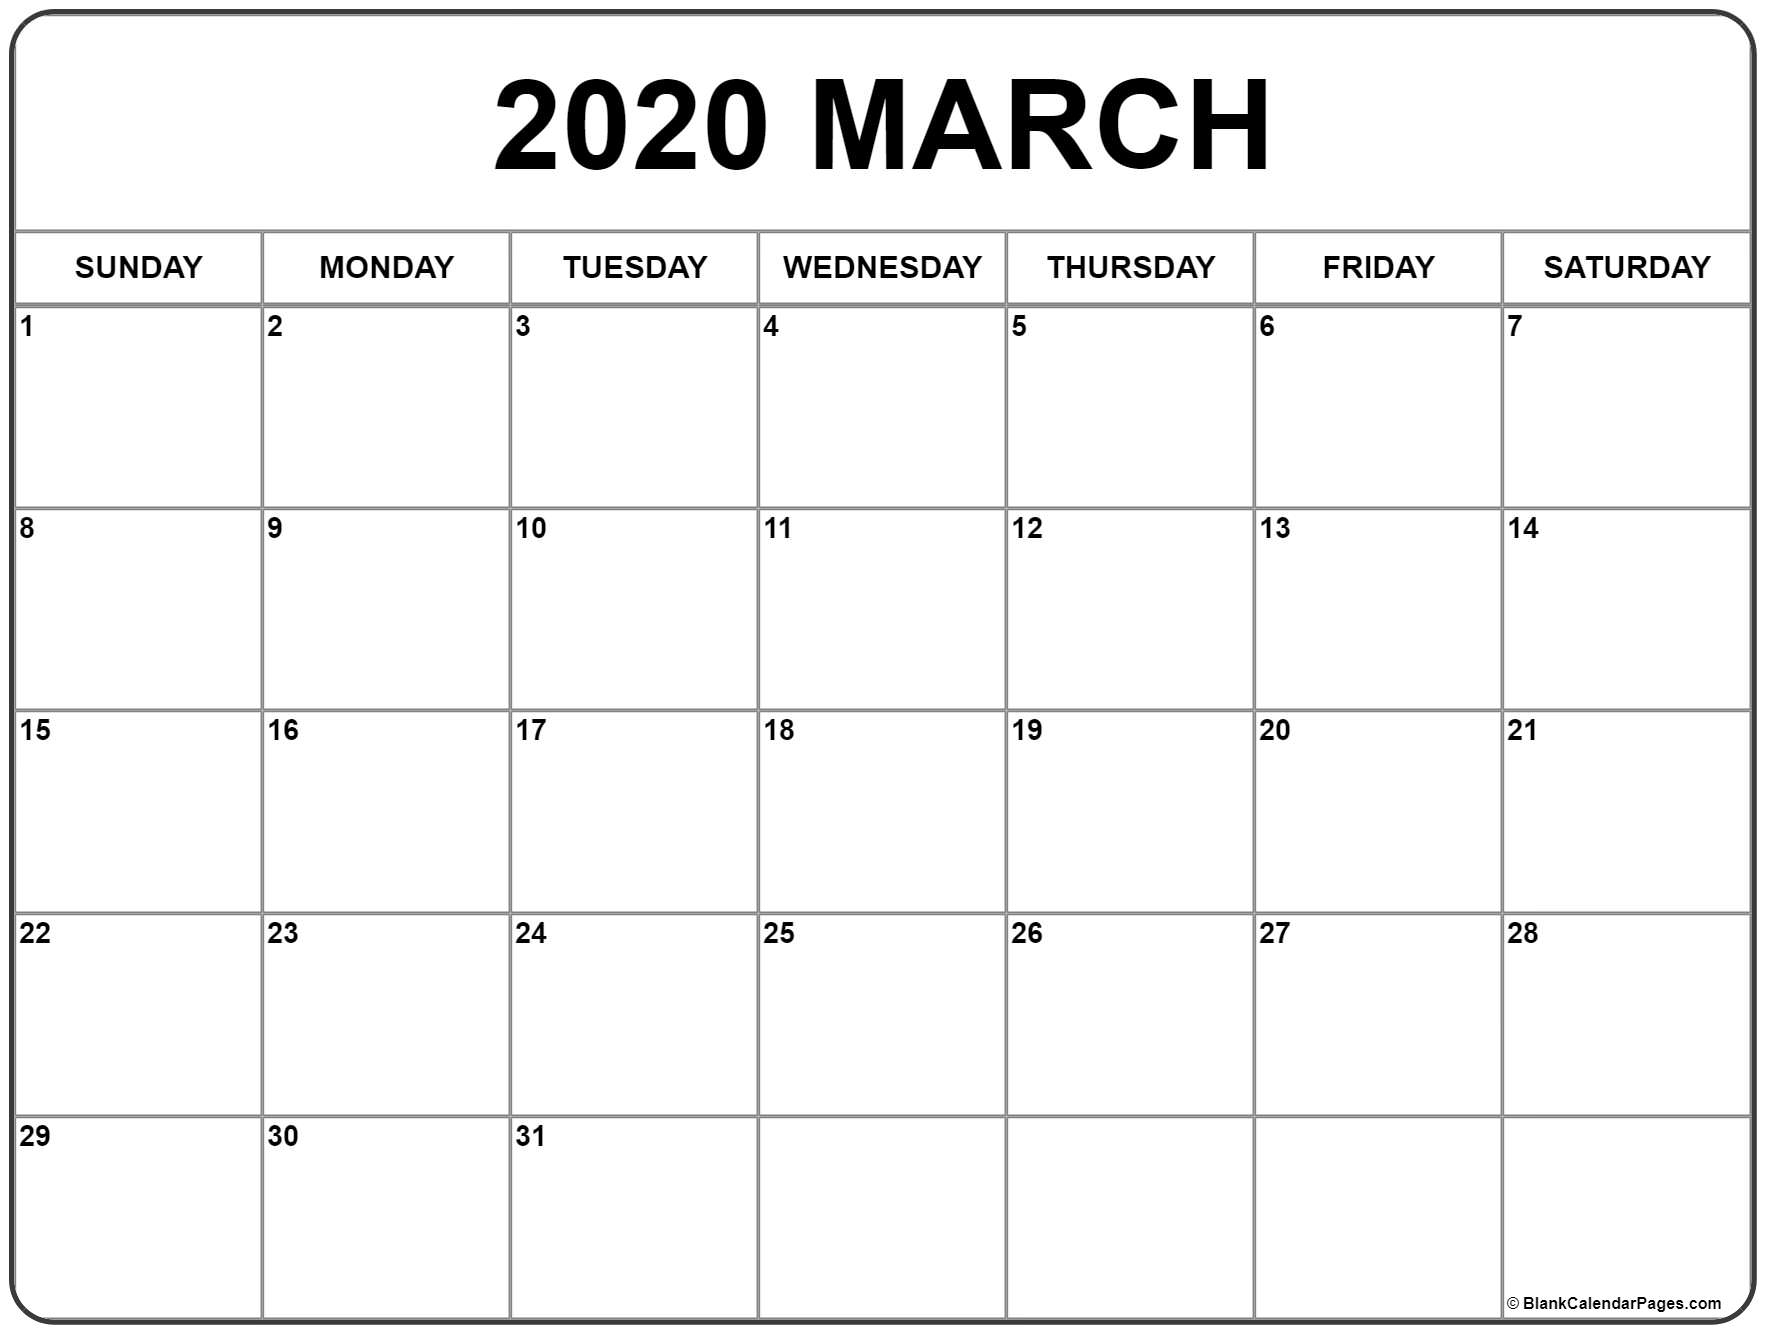 March 2020 Calendar | Free Printable Monthly Calendars for Google Free Printable Calendars 2020